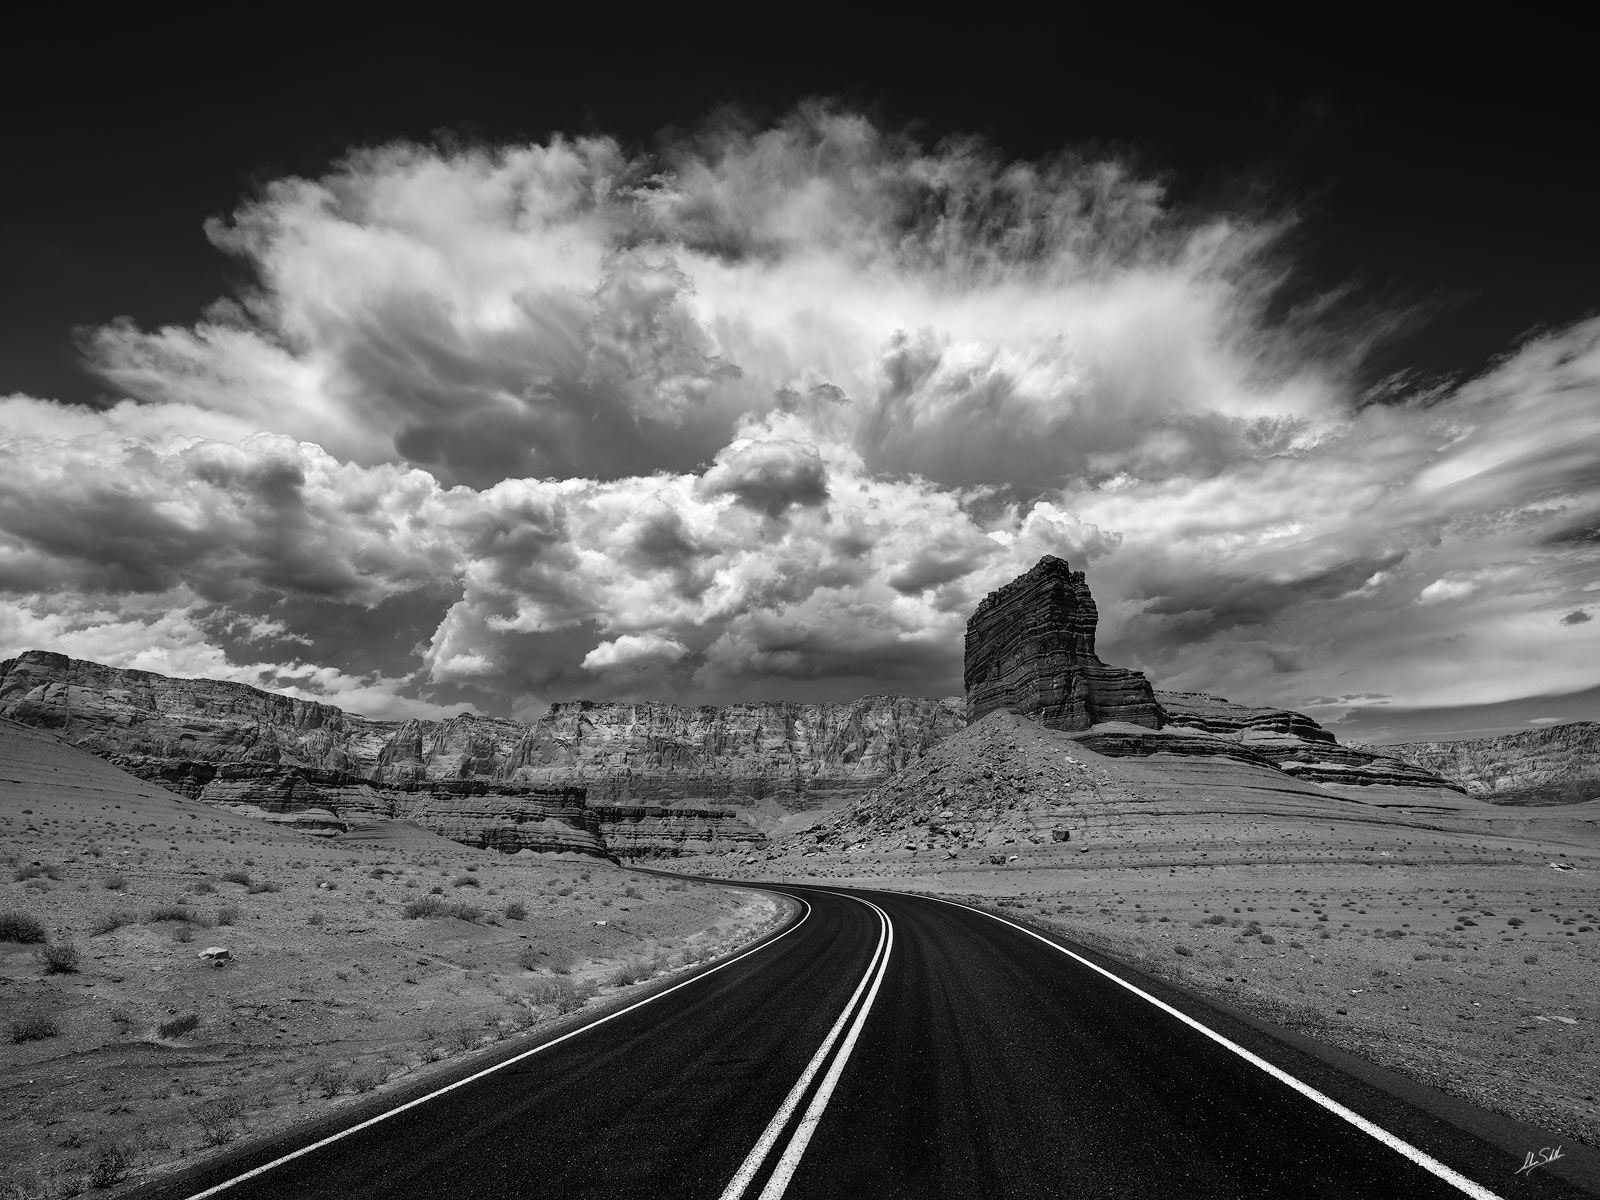 AZ, Arizona, Cathedral Rock, Clouds, Monsoon, Storm, Thunderstorm, Vermilion Cliffs, lees ferry, photo